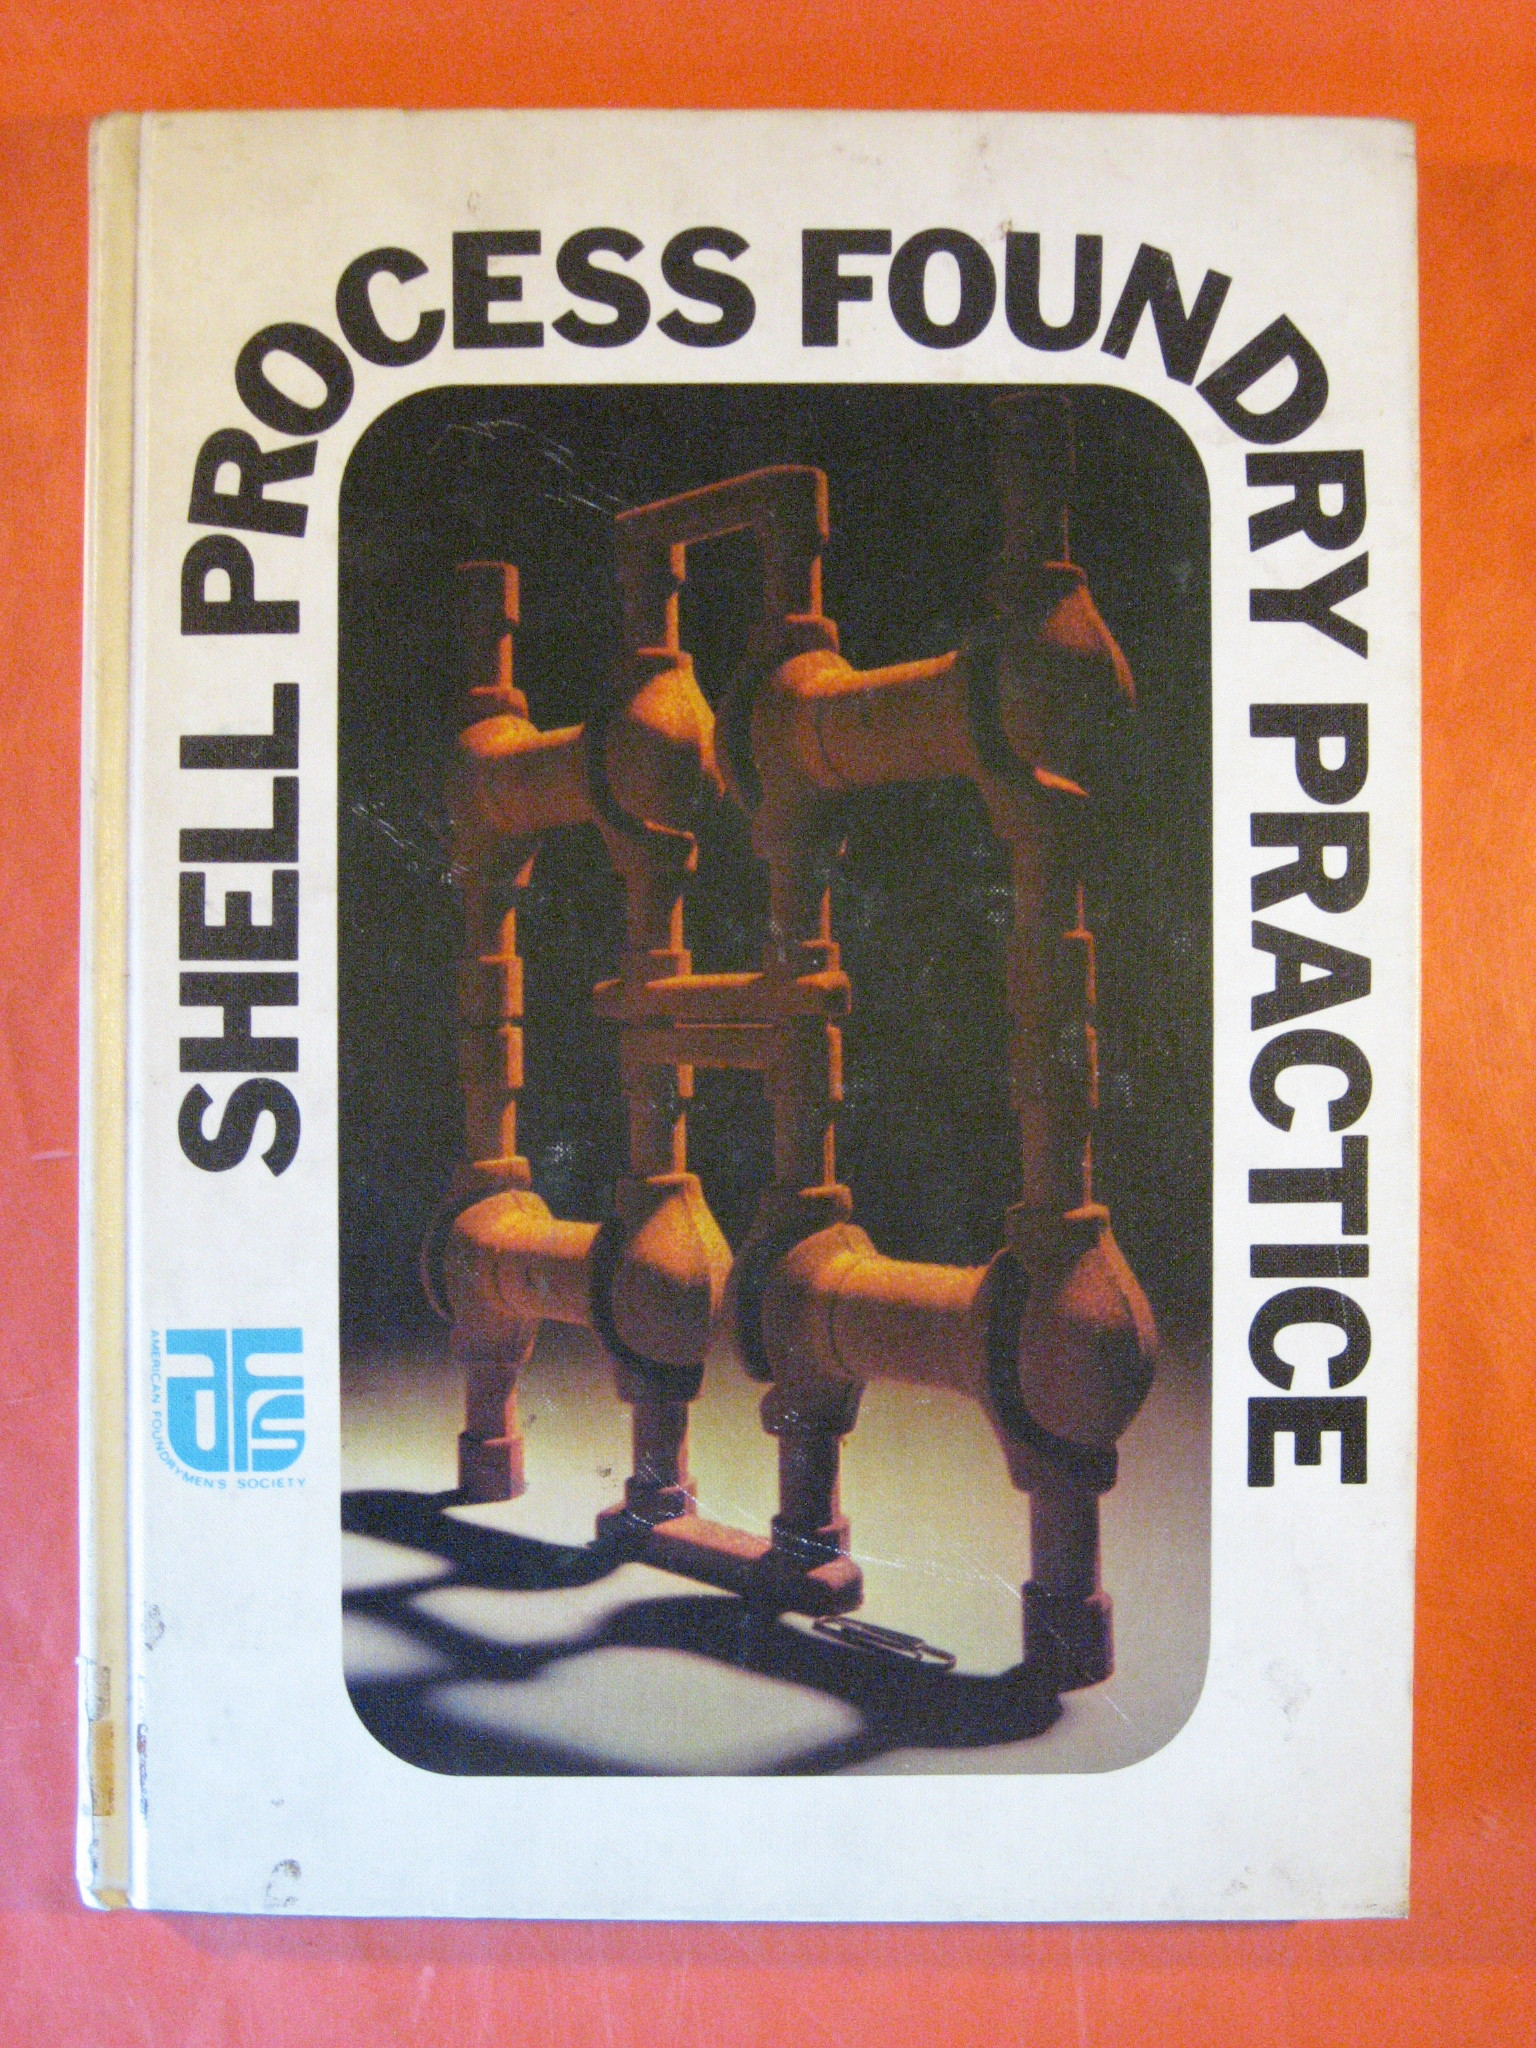 Shell Process Foundry Practice, No Author